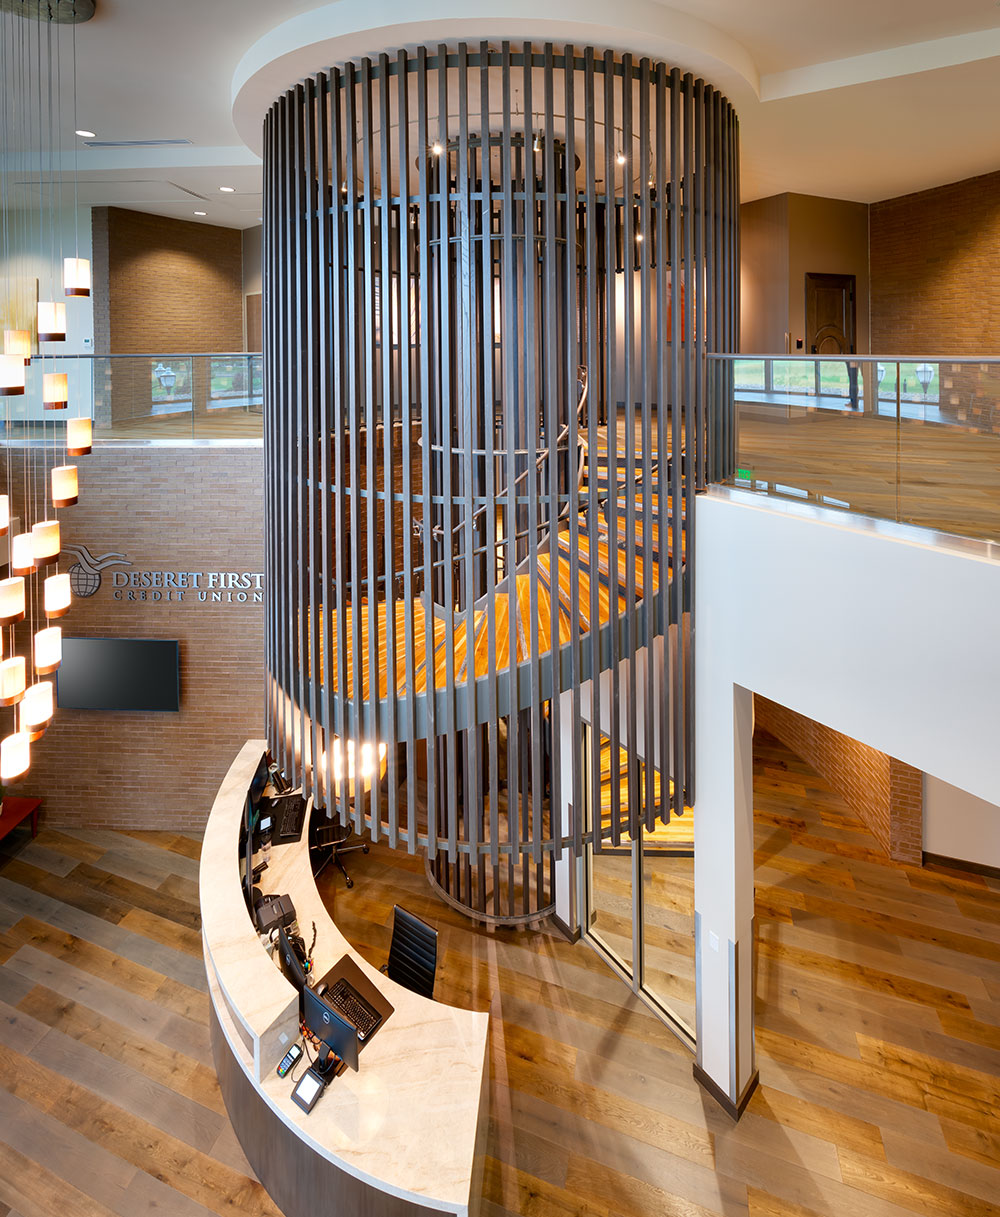 Bank-Architect-Utah-DFCM-Operations-Stair